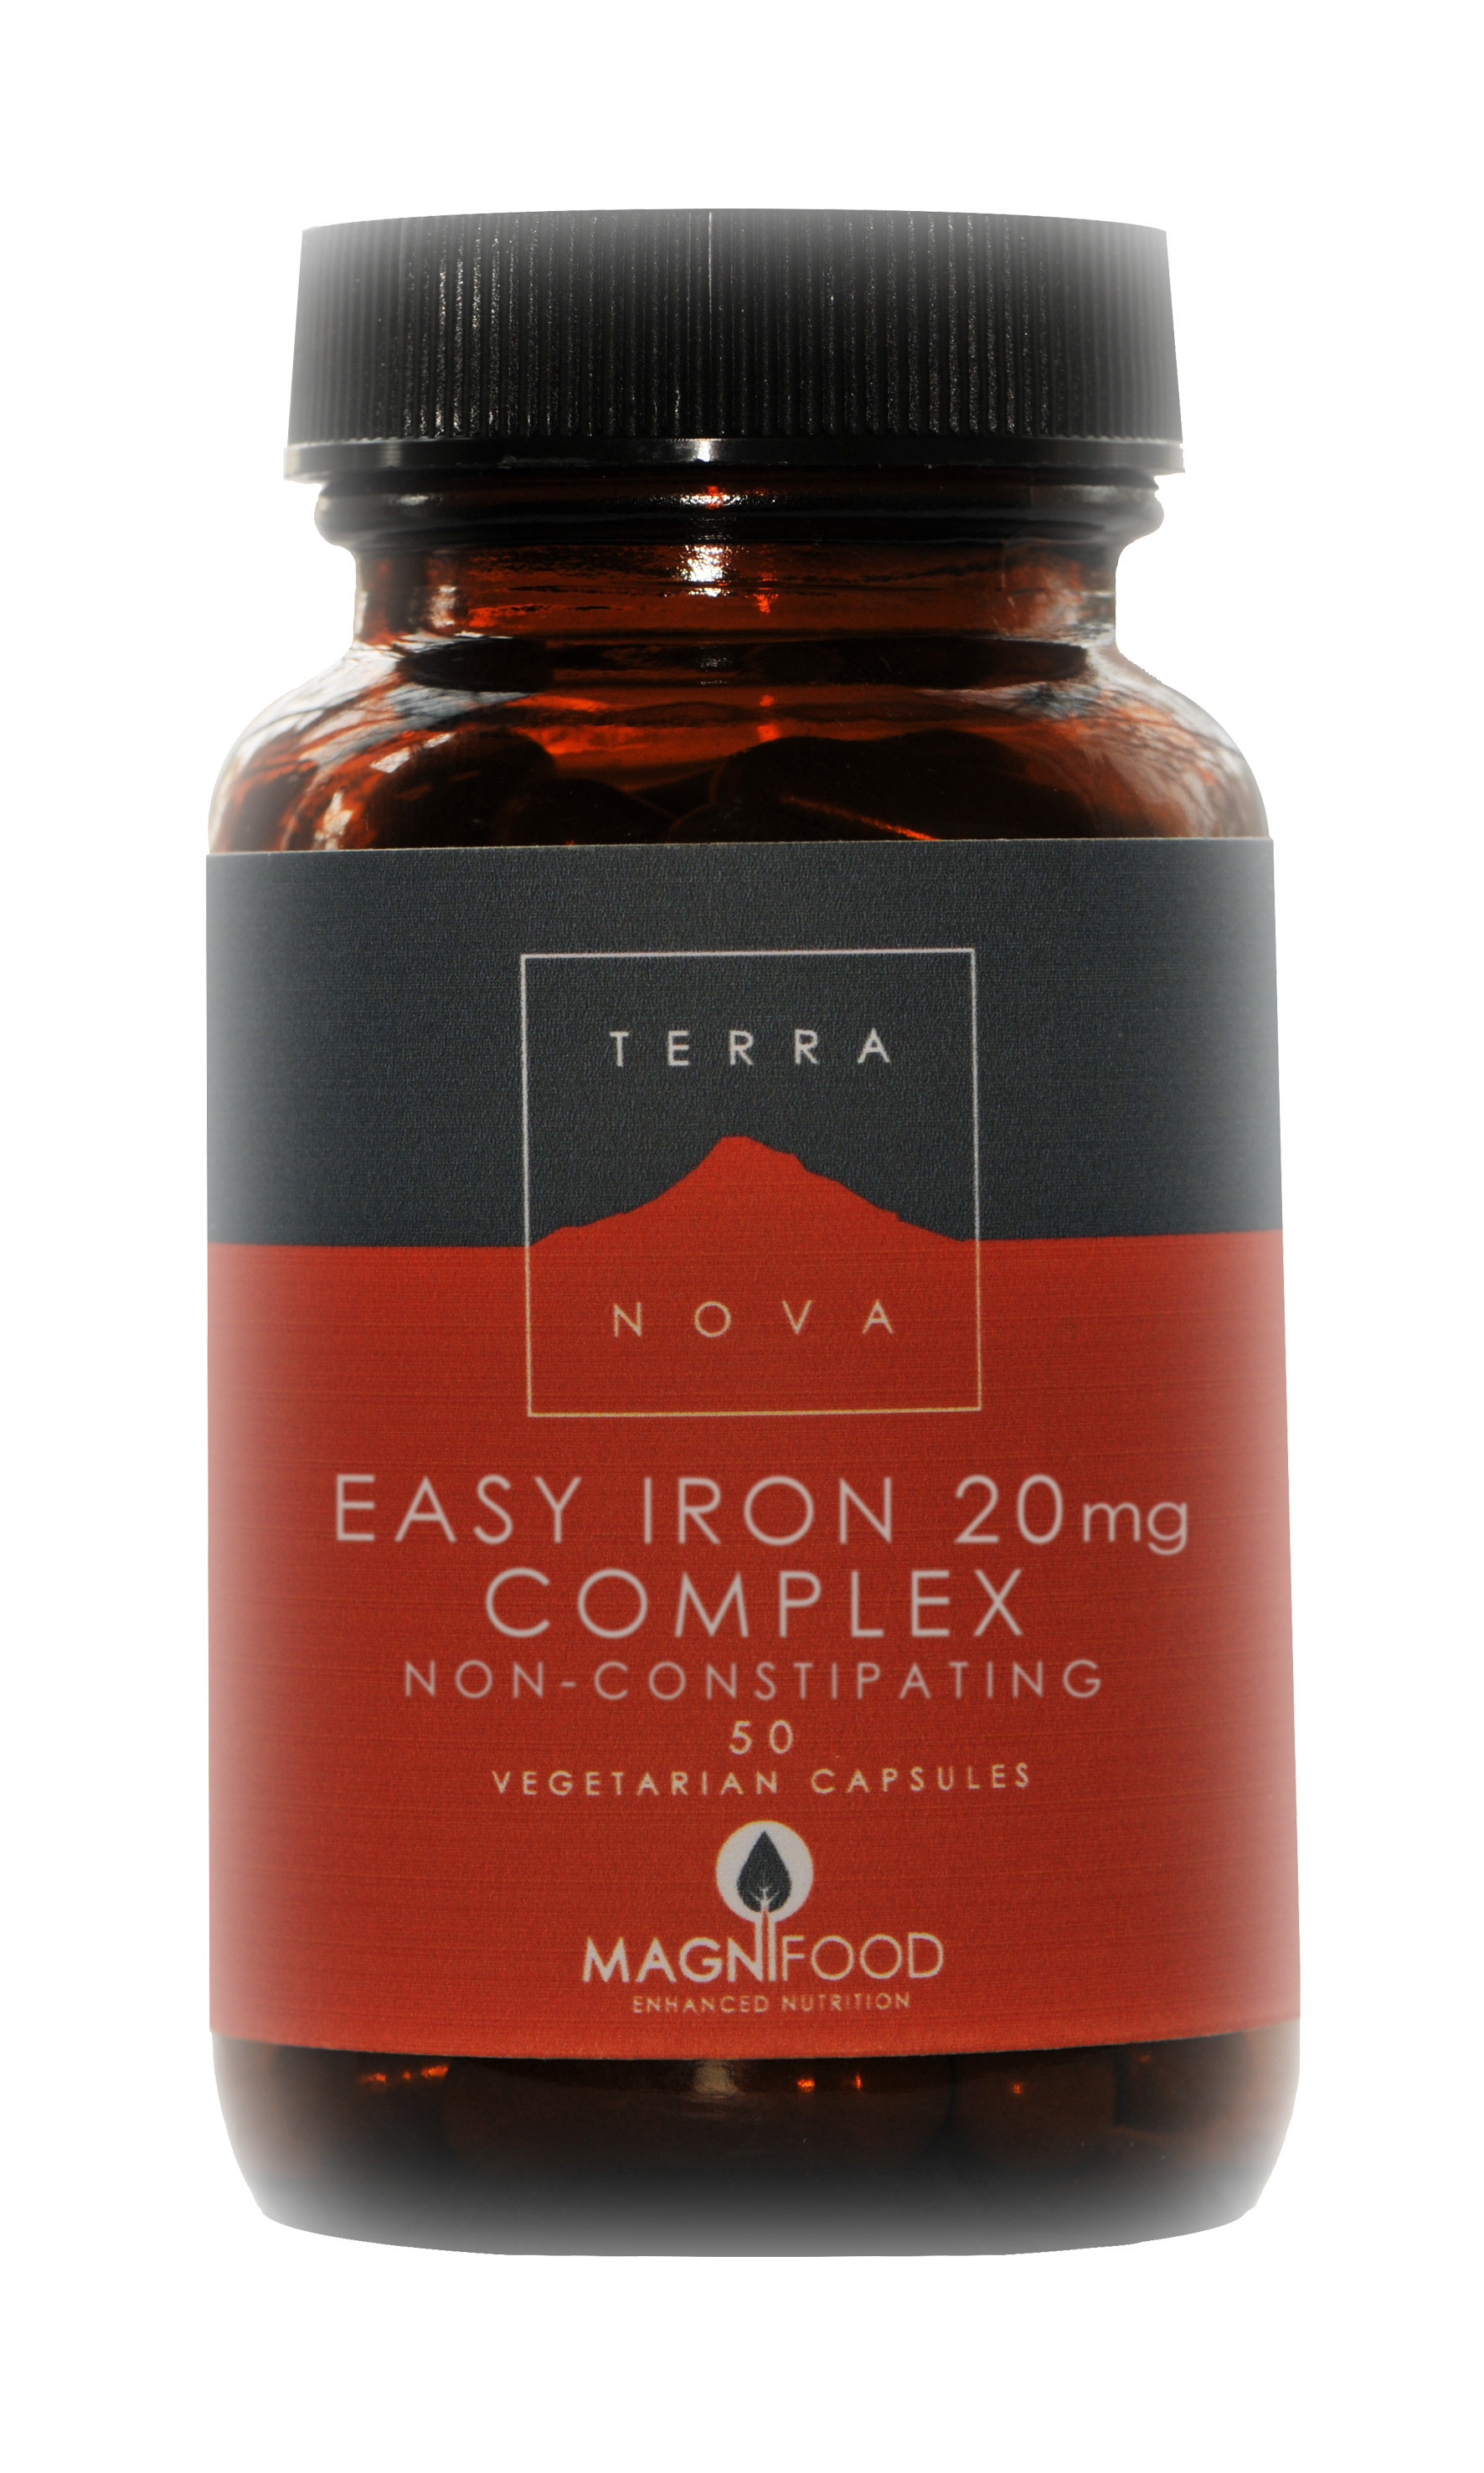 Terranova iron supplements